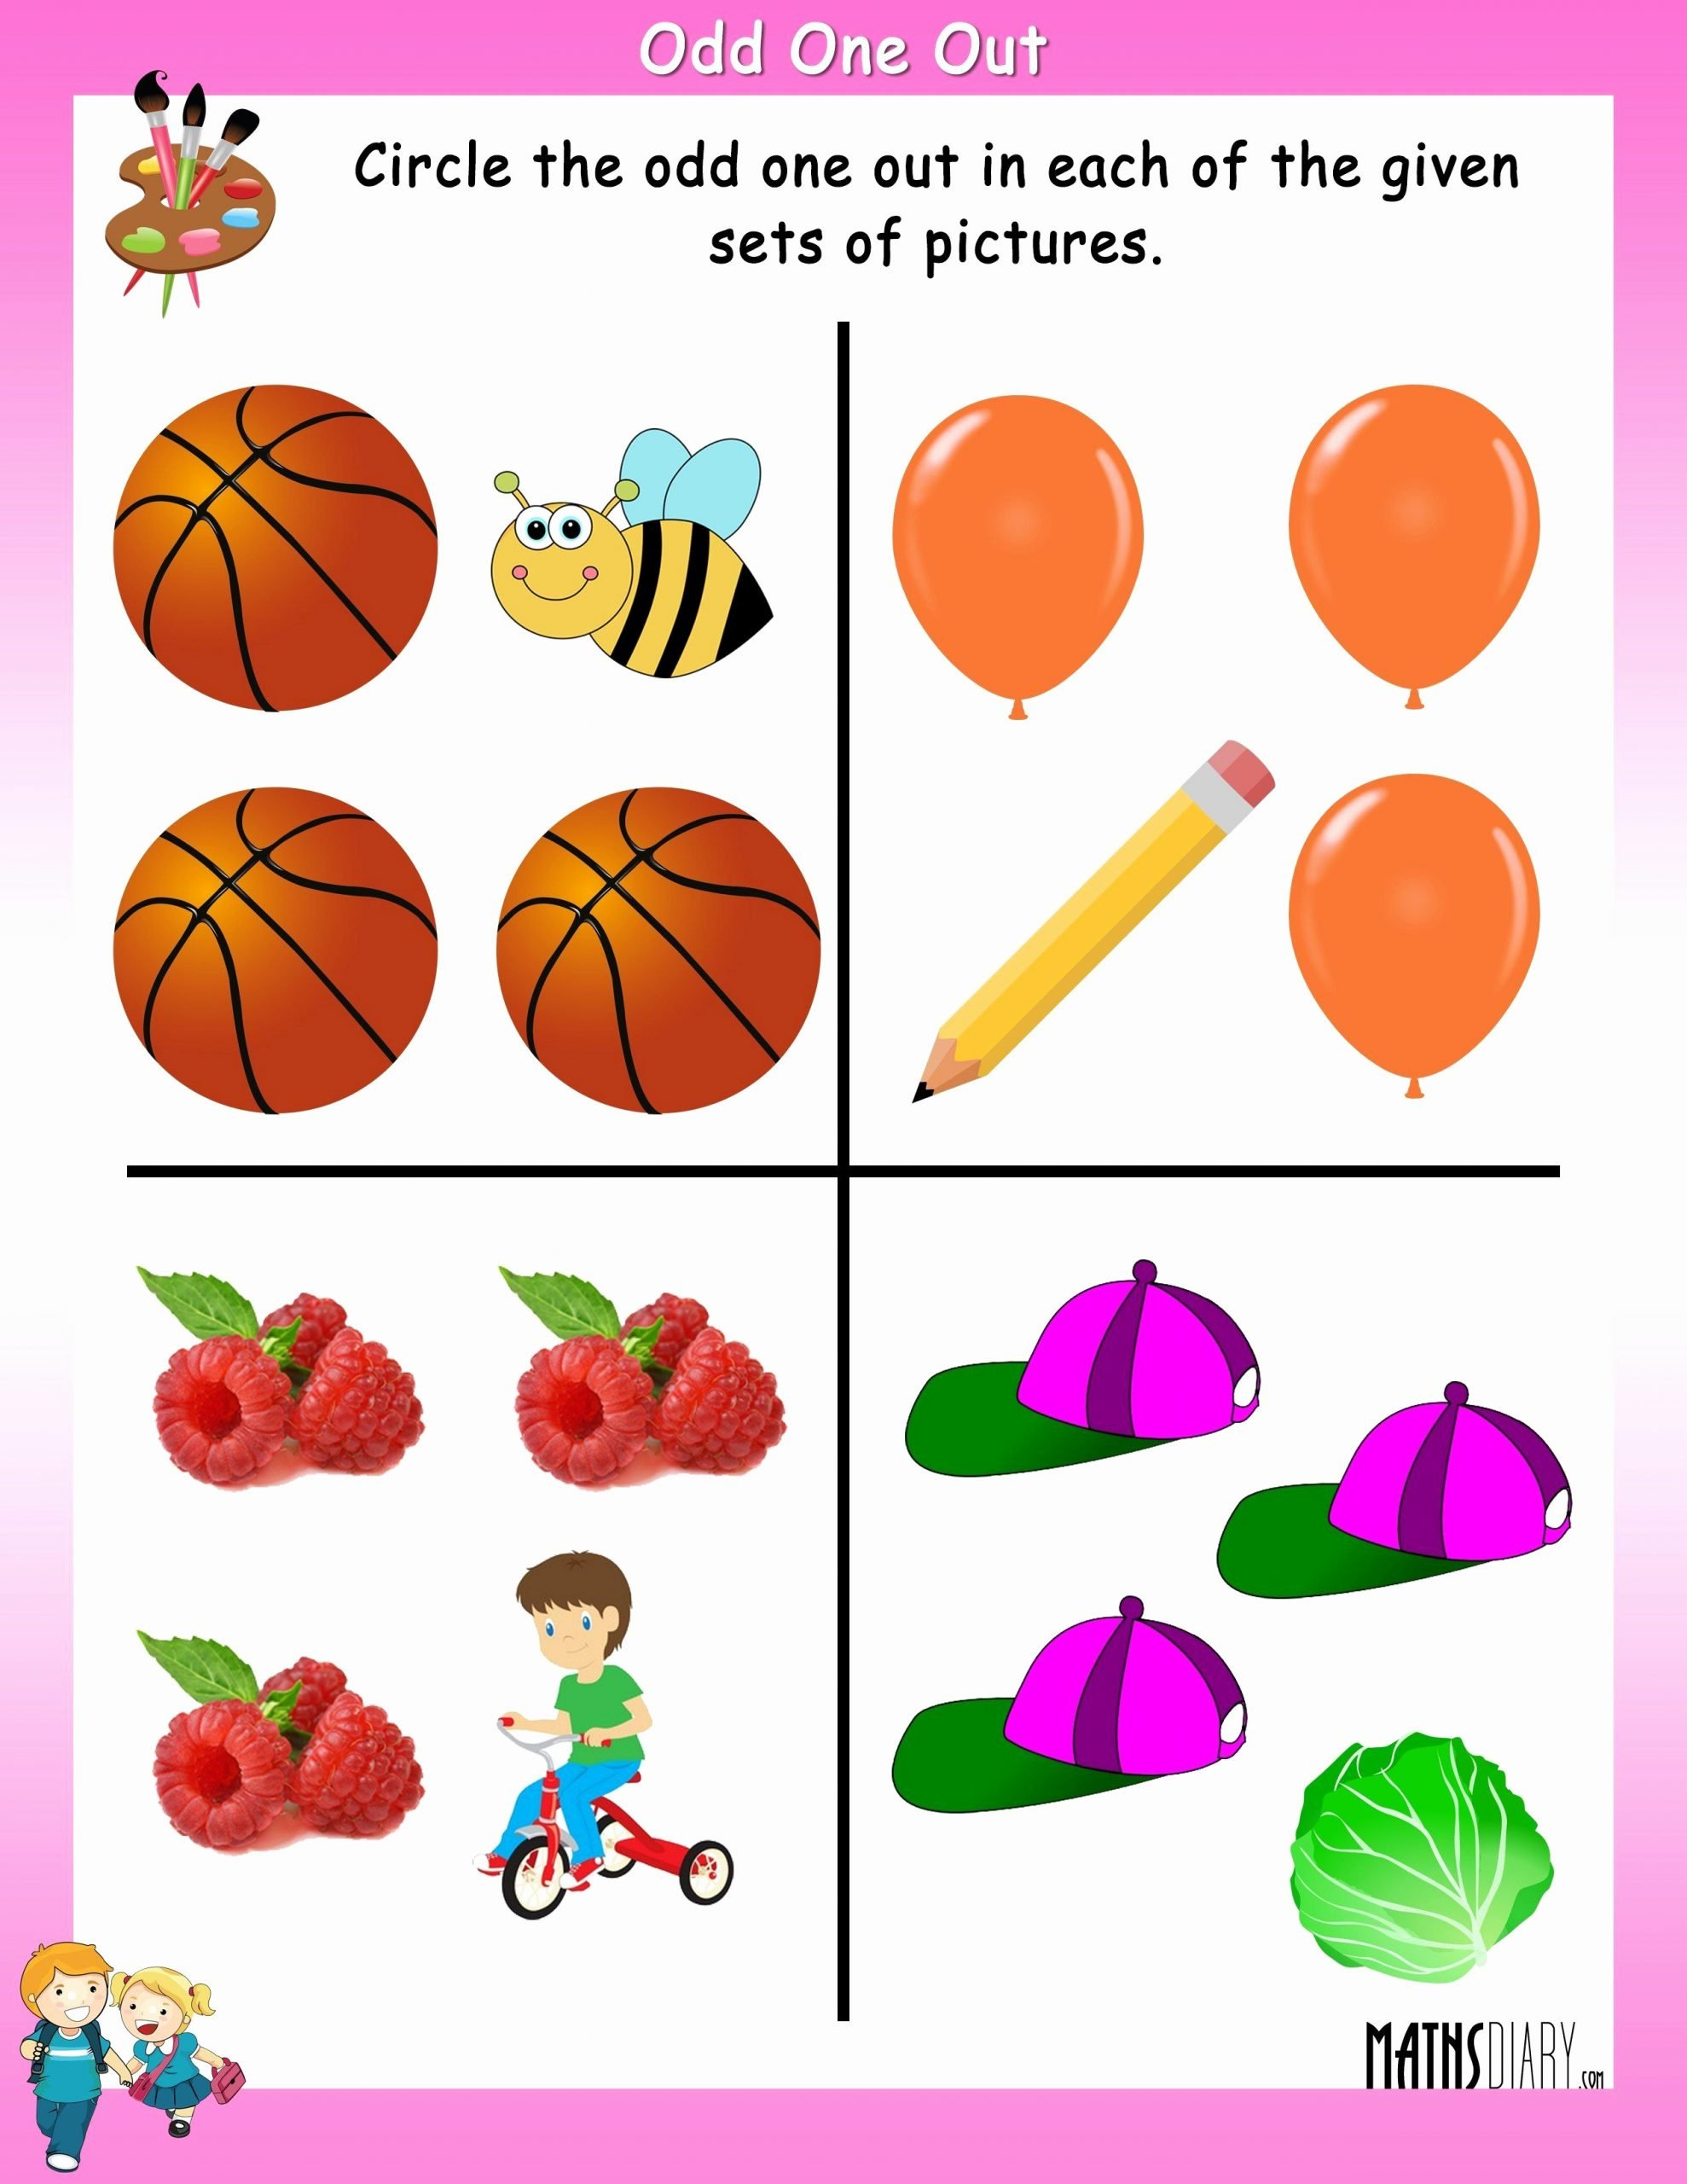 Odd One Out Worksheets for Preschoolers top Circle the Odd One Out Mathsdiary